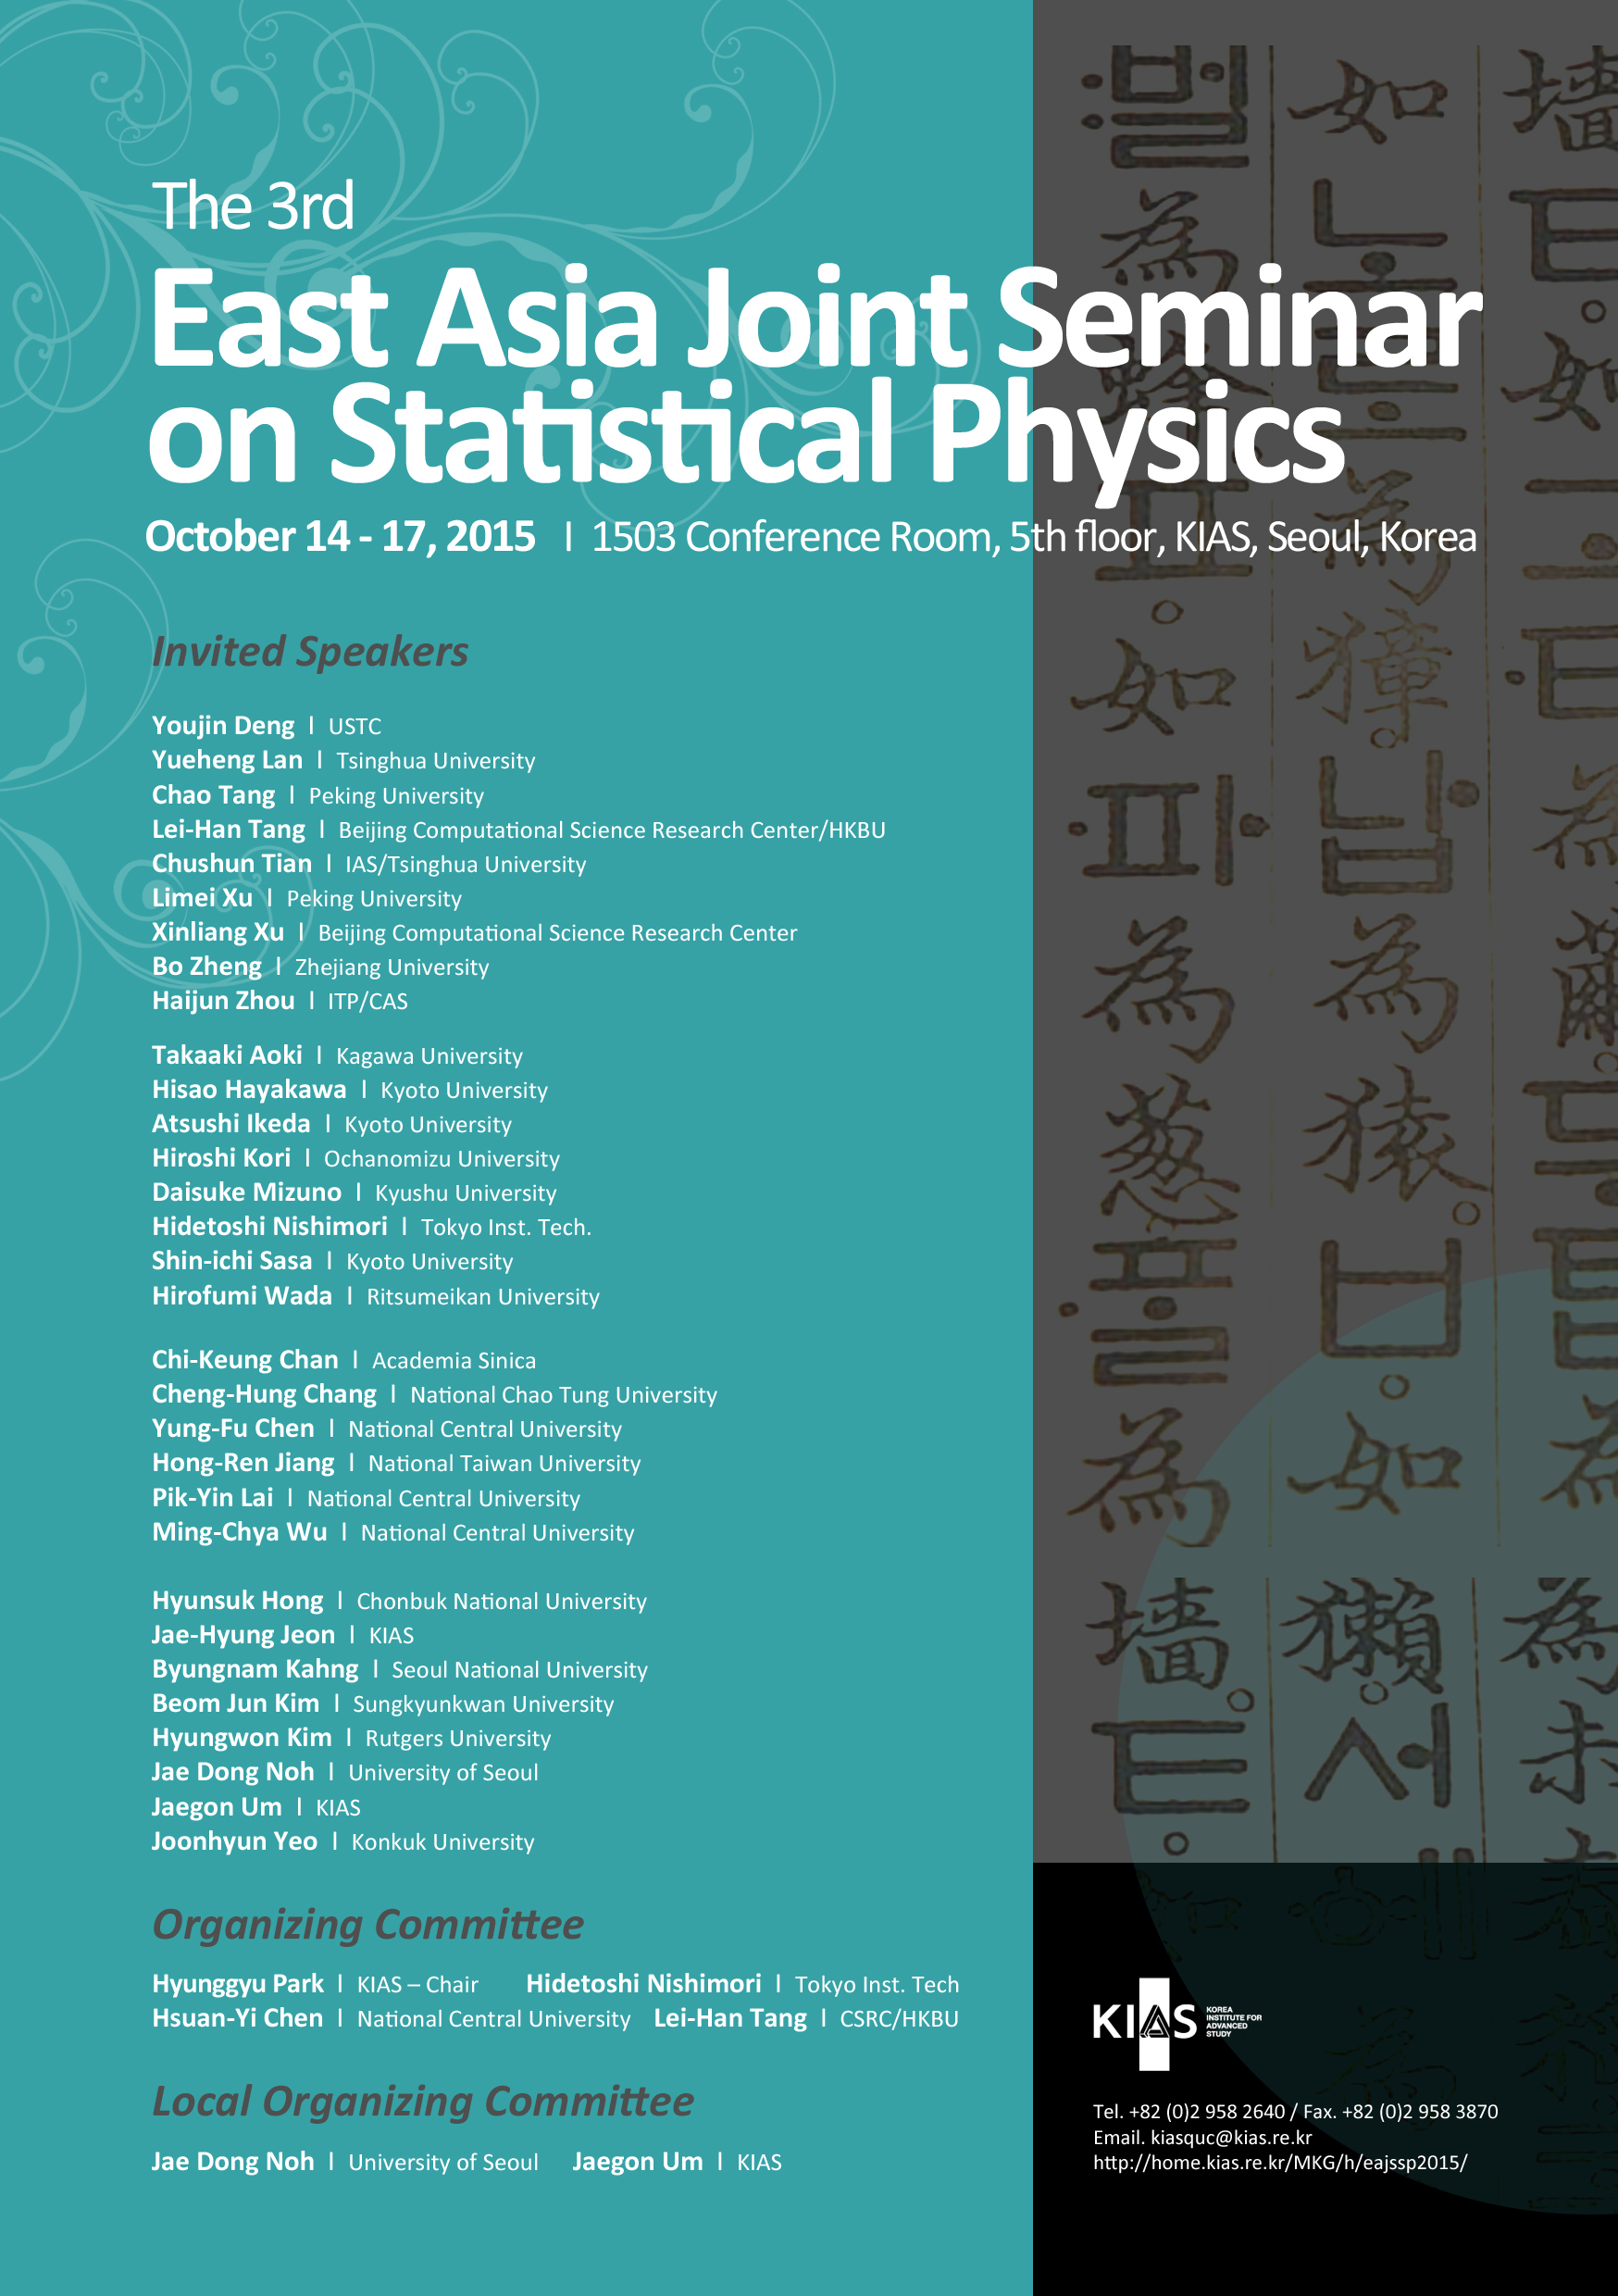 The 3rd East Asia Joint Seminar on Statistical Physics